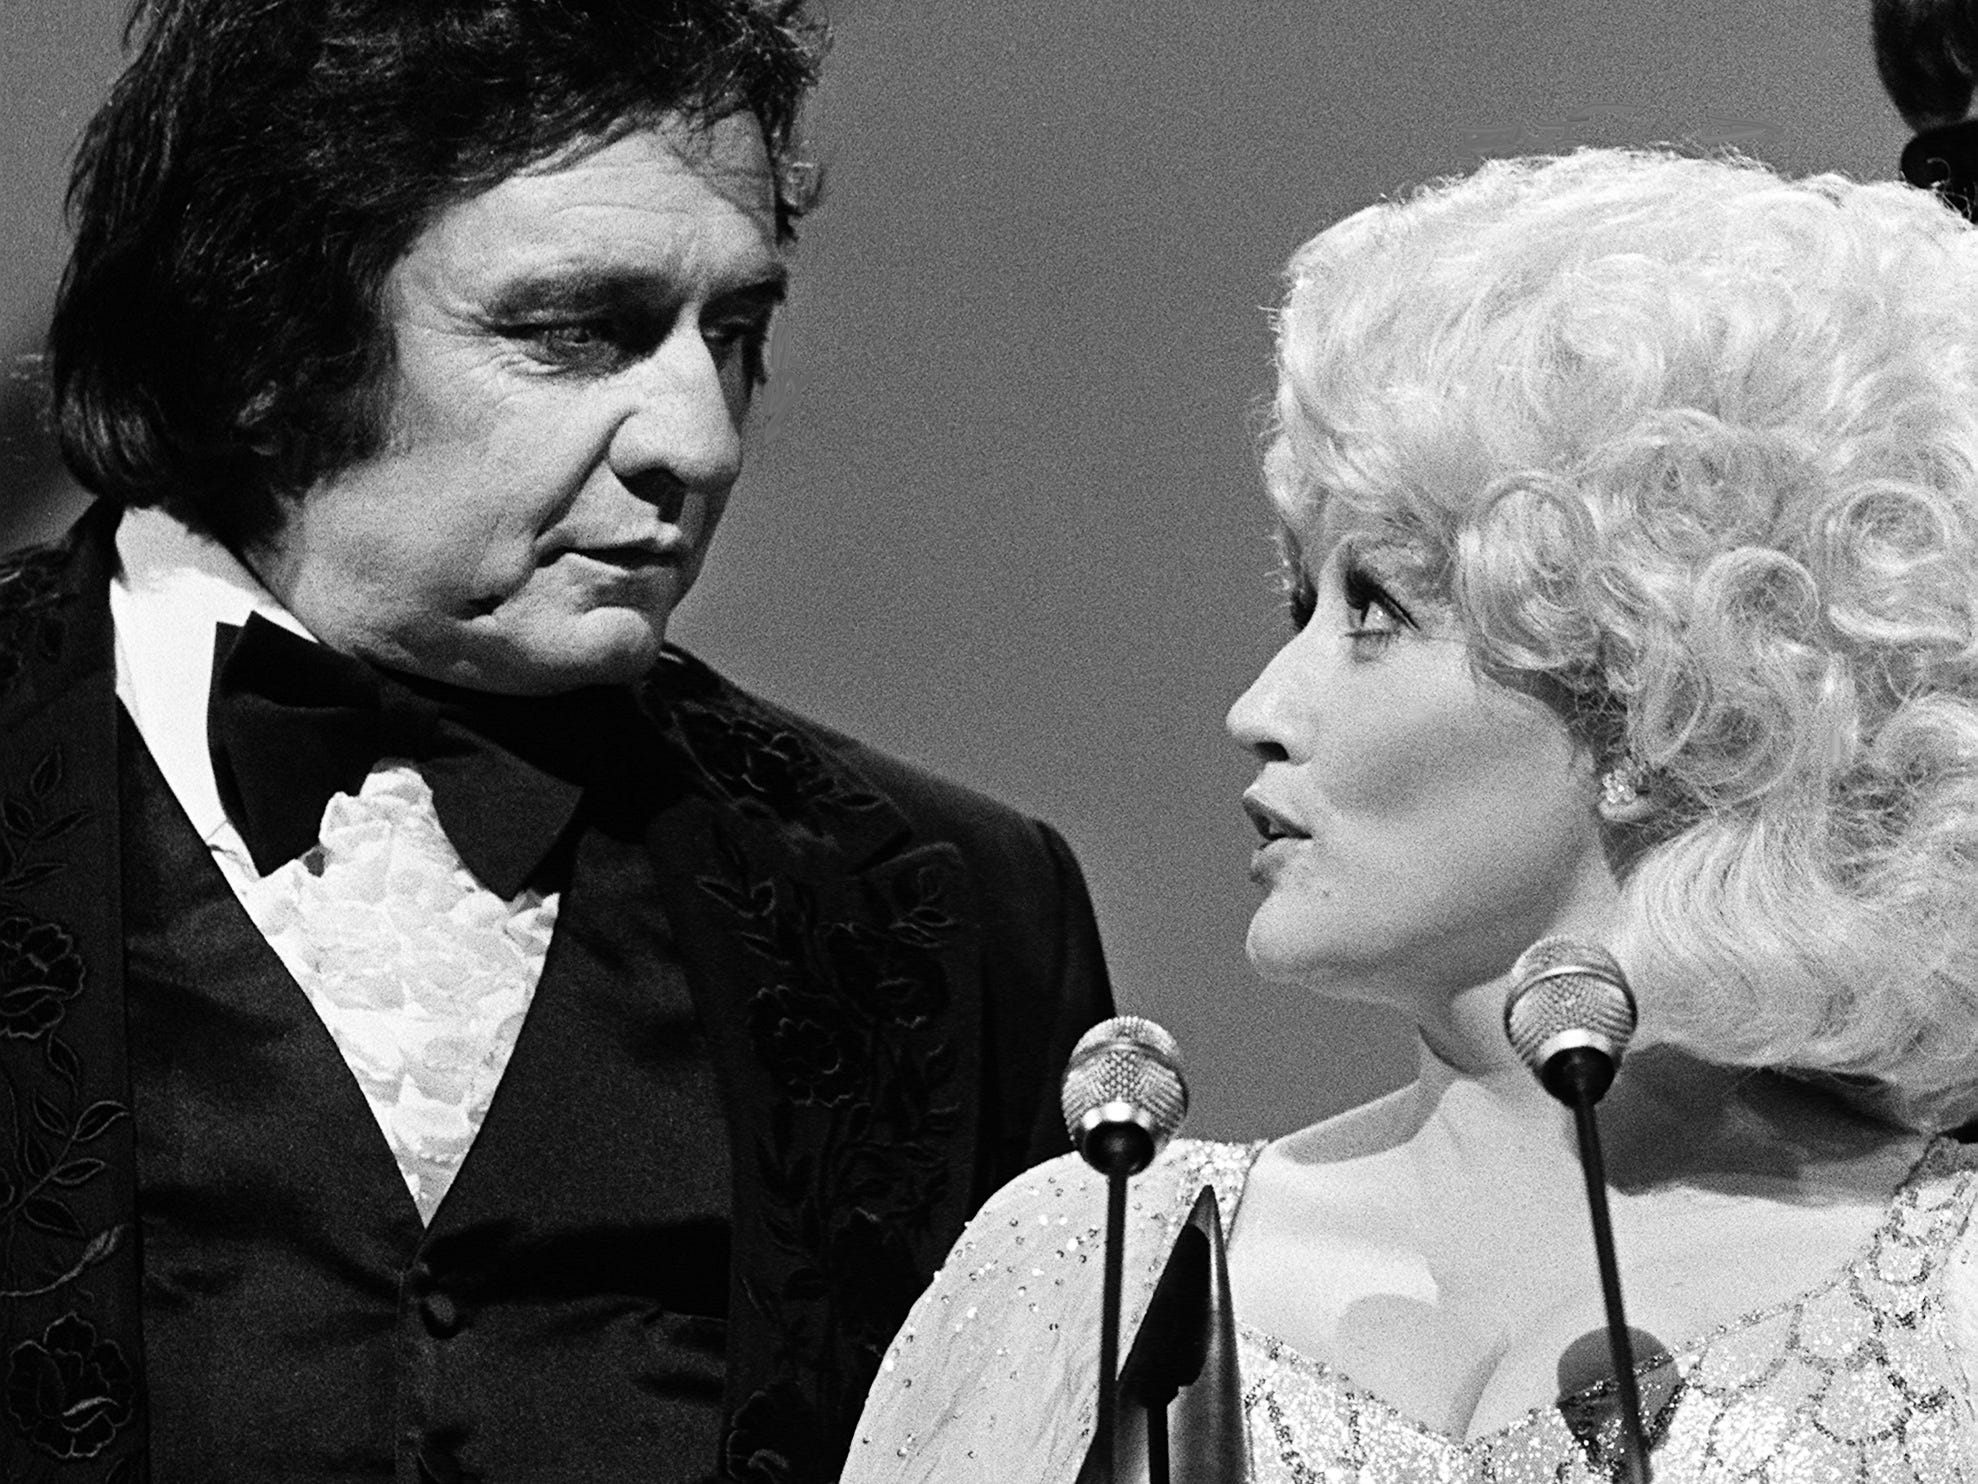 Dolly Parton speaks after winning the Entertainer of the Year award during the 12th annual CMA Awards show at the Grand Ole Opry House on Oct. 9, 1978. Looking on is presenter and host Johnny Cash.